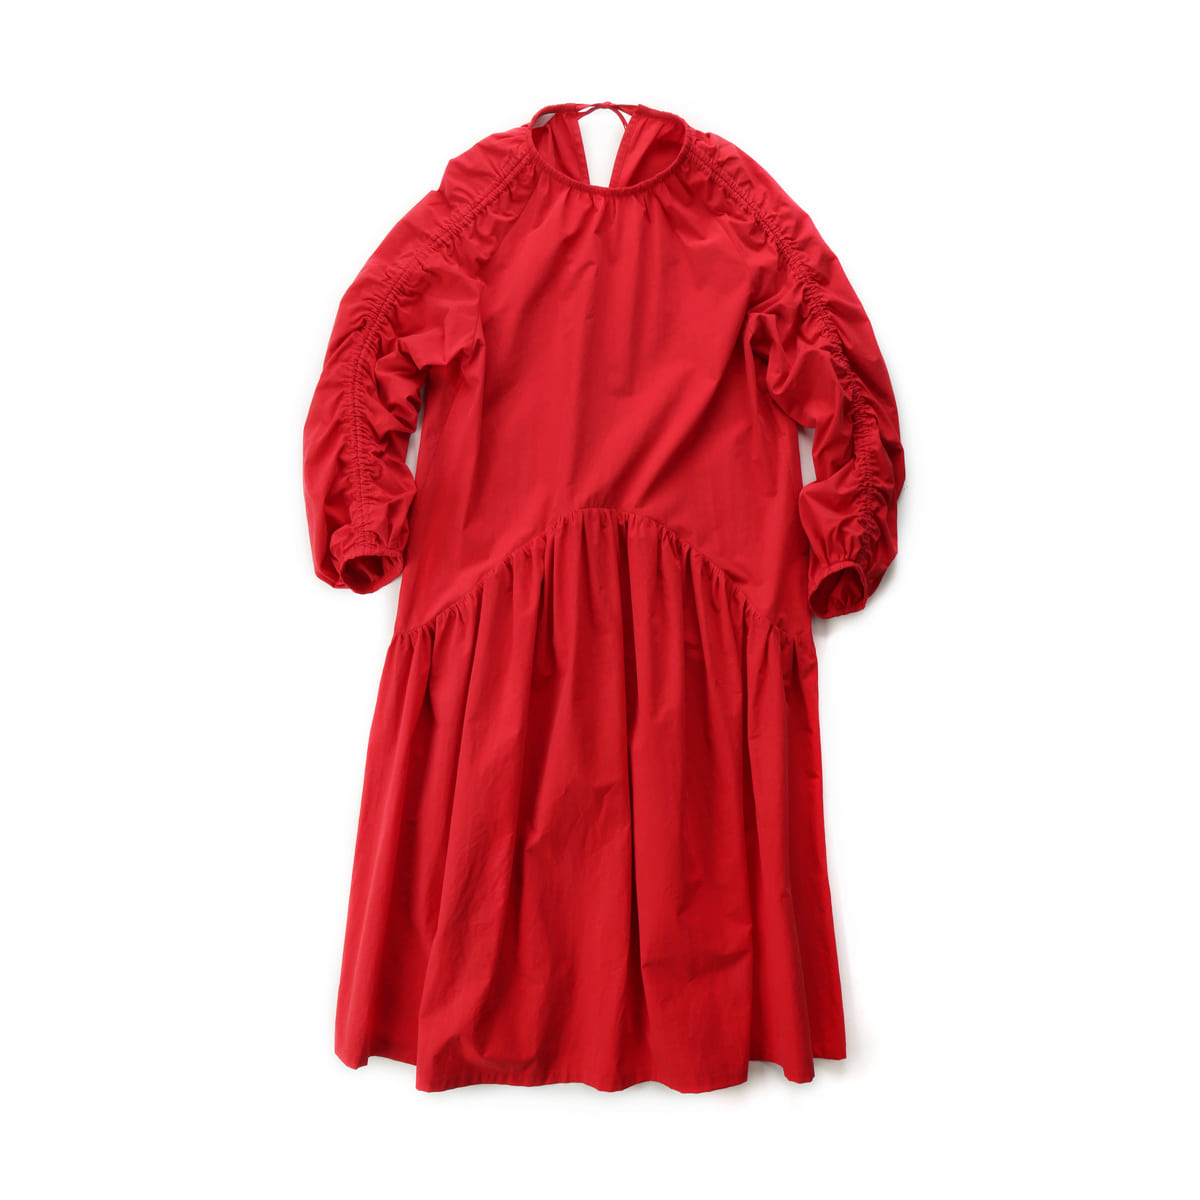 [MUSED] ONIRIQUE LUCING DRESS 'RED'